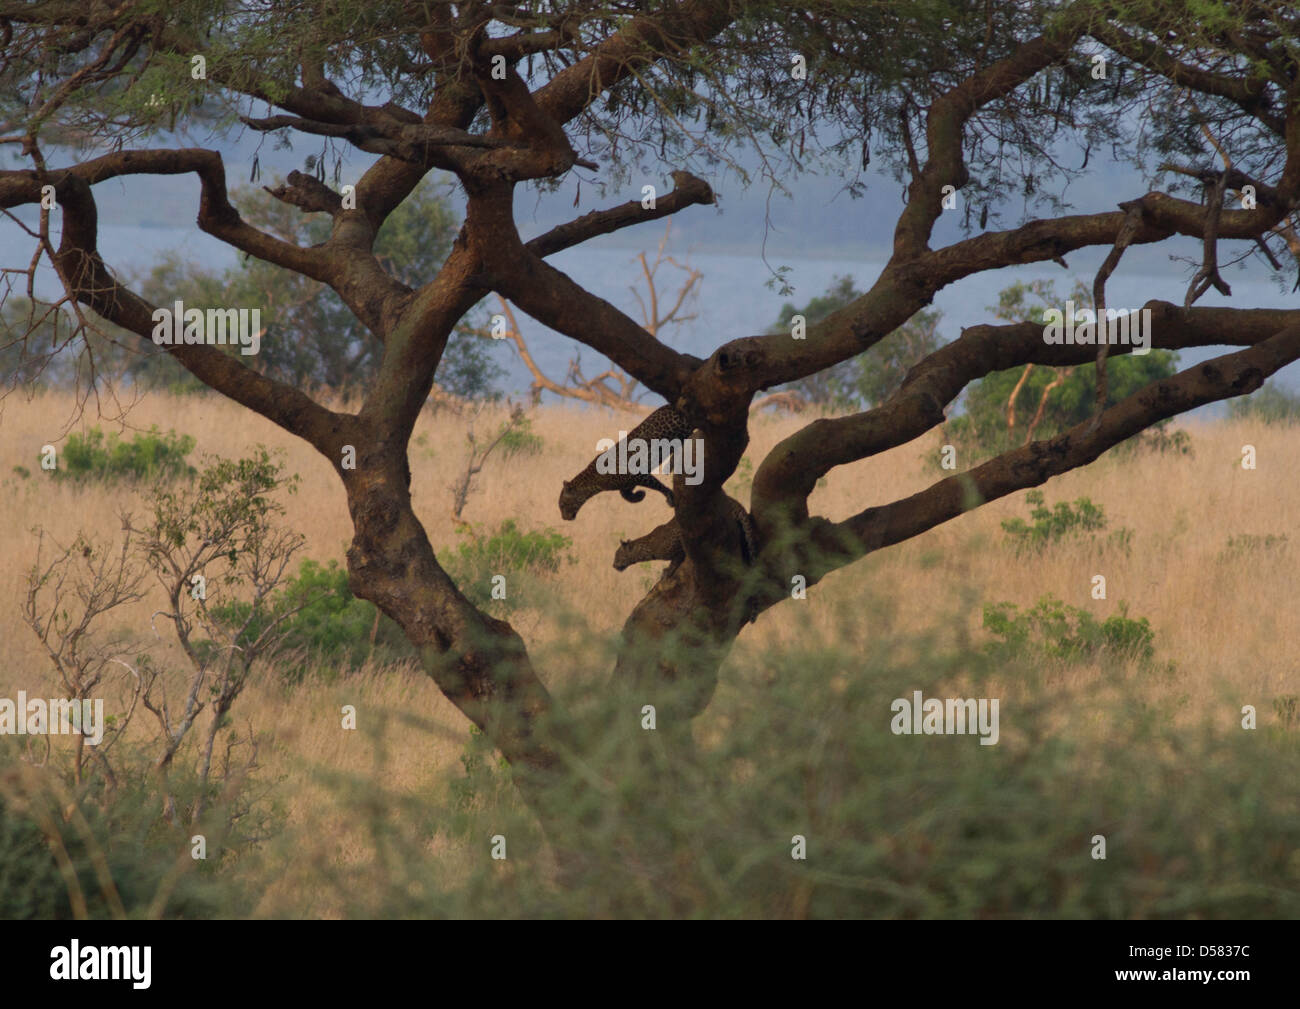 Adult female leopard (Panthera pardus) with sub-adult cub in tree Stock Photo